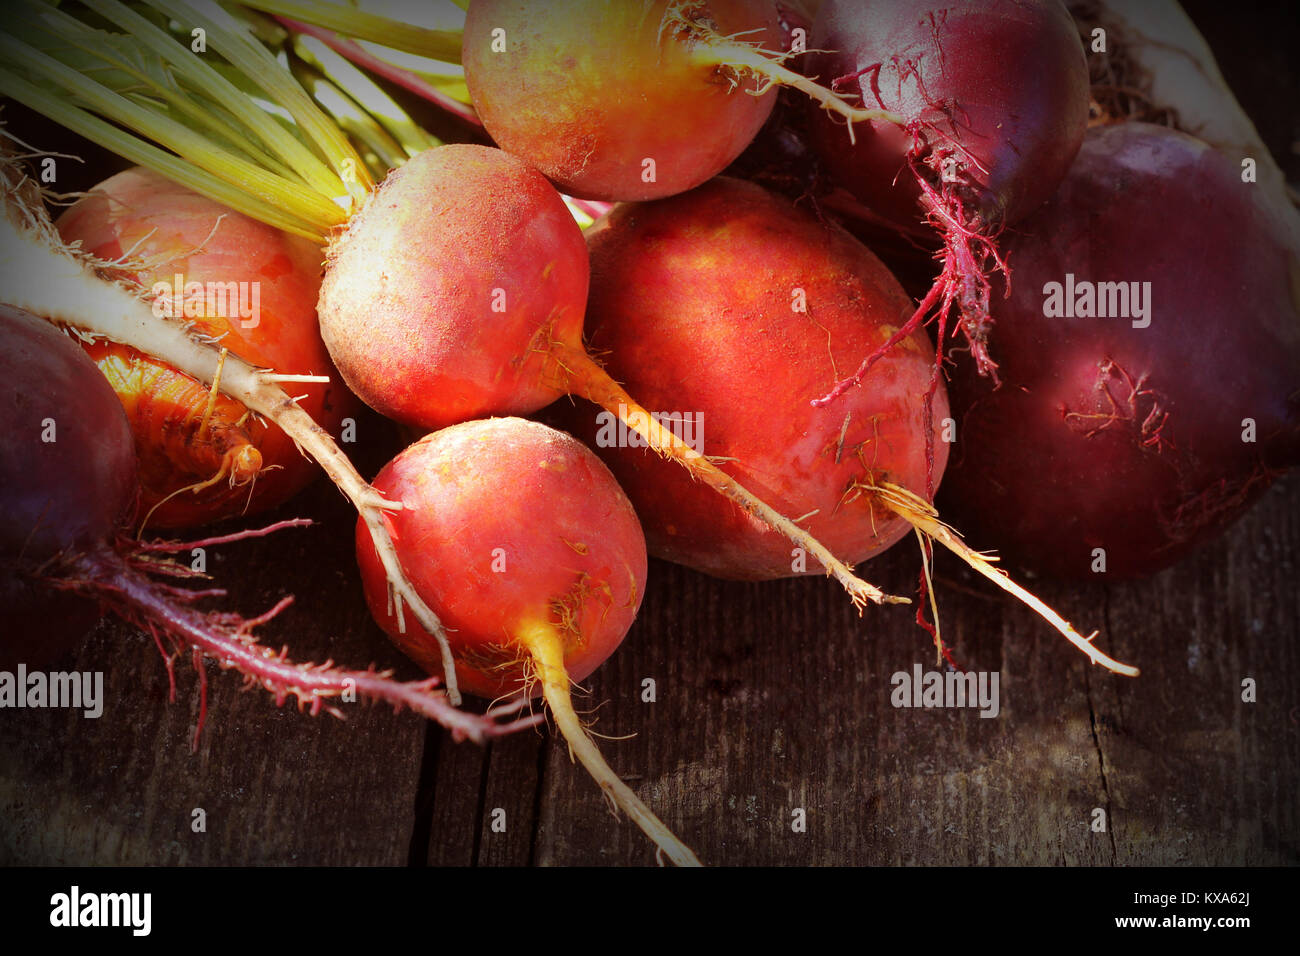 Fresh farm colorful beetroot on a wooden background. Detox and health. Selective focus. Red, golden, white beet - Stock Image